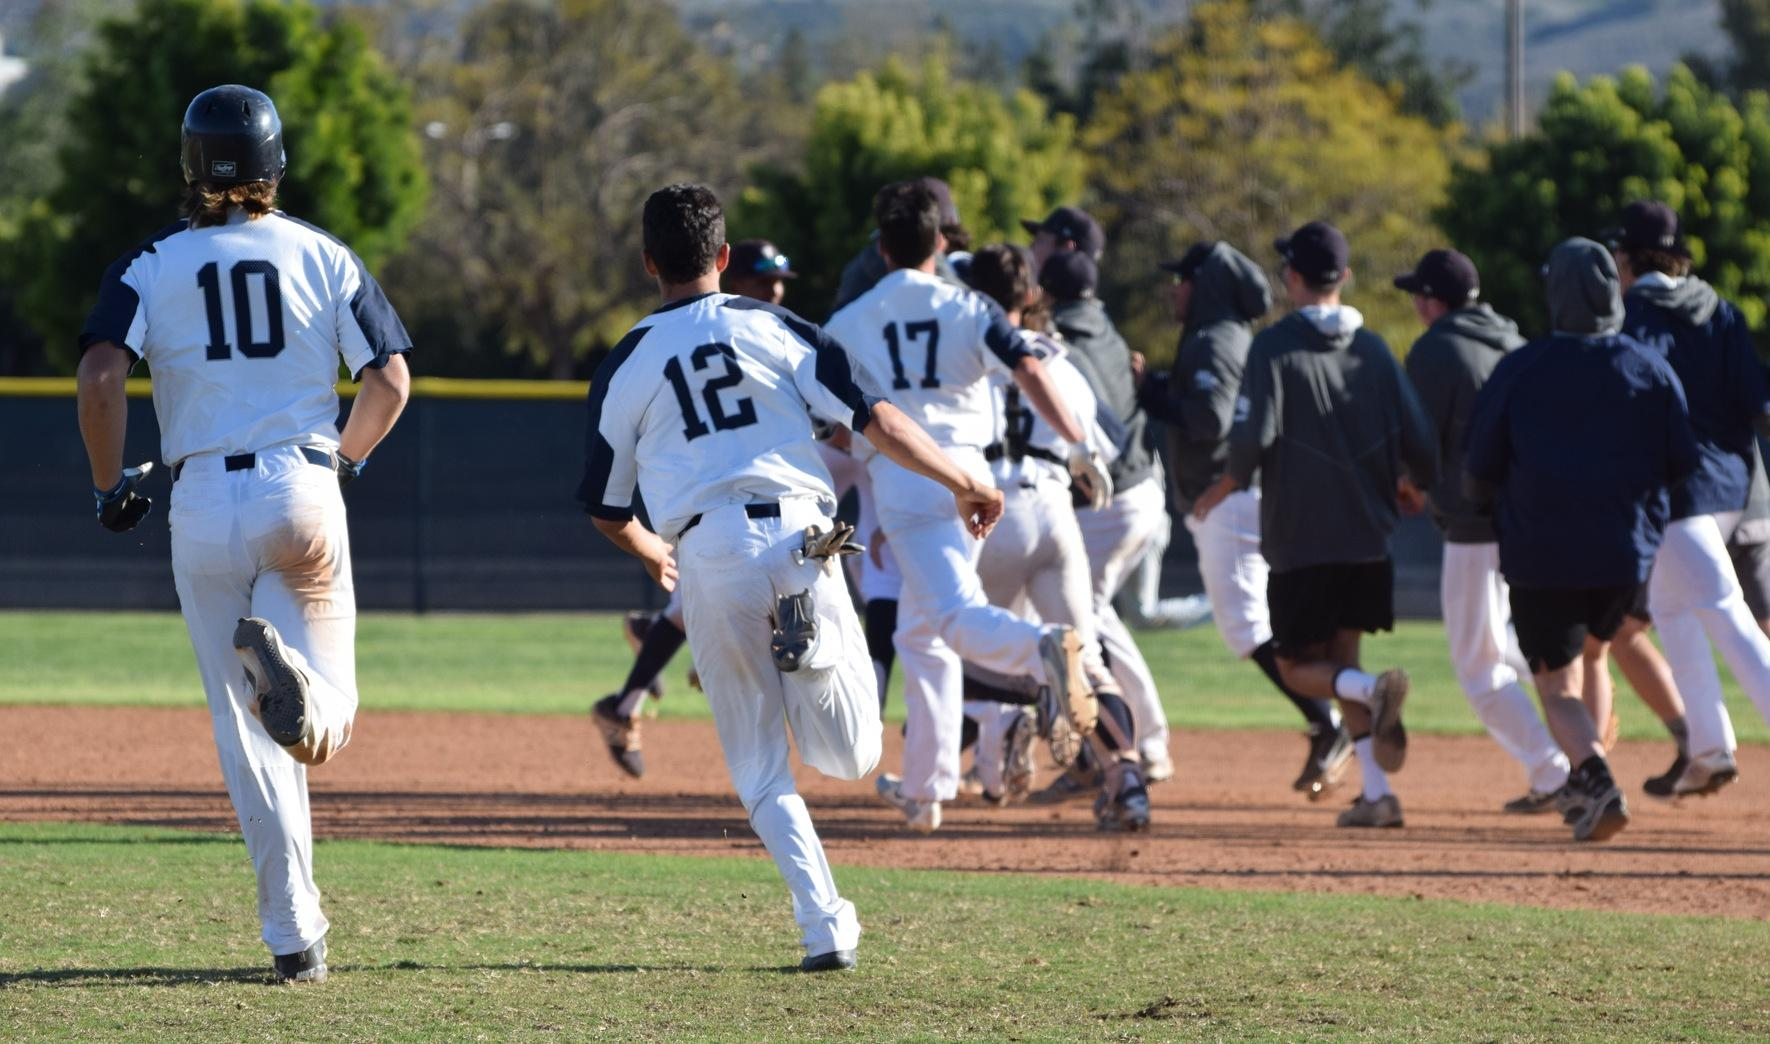 Baseball team walks off with 4-3 win over Golden West